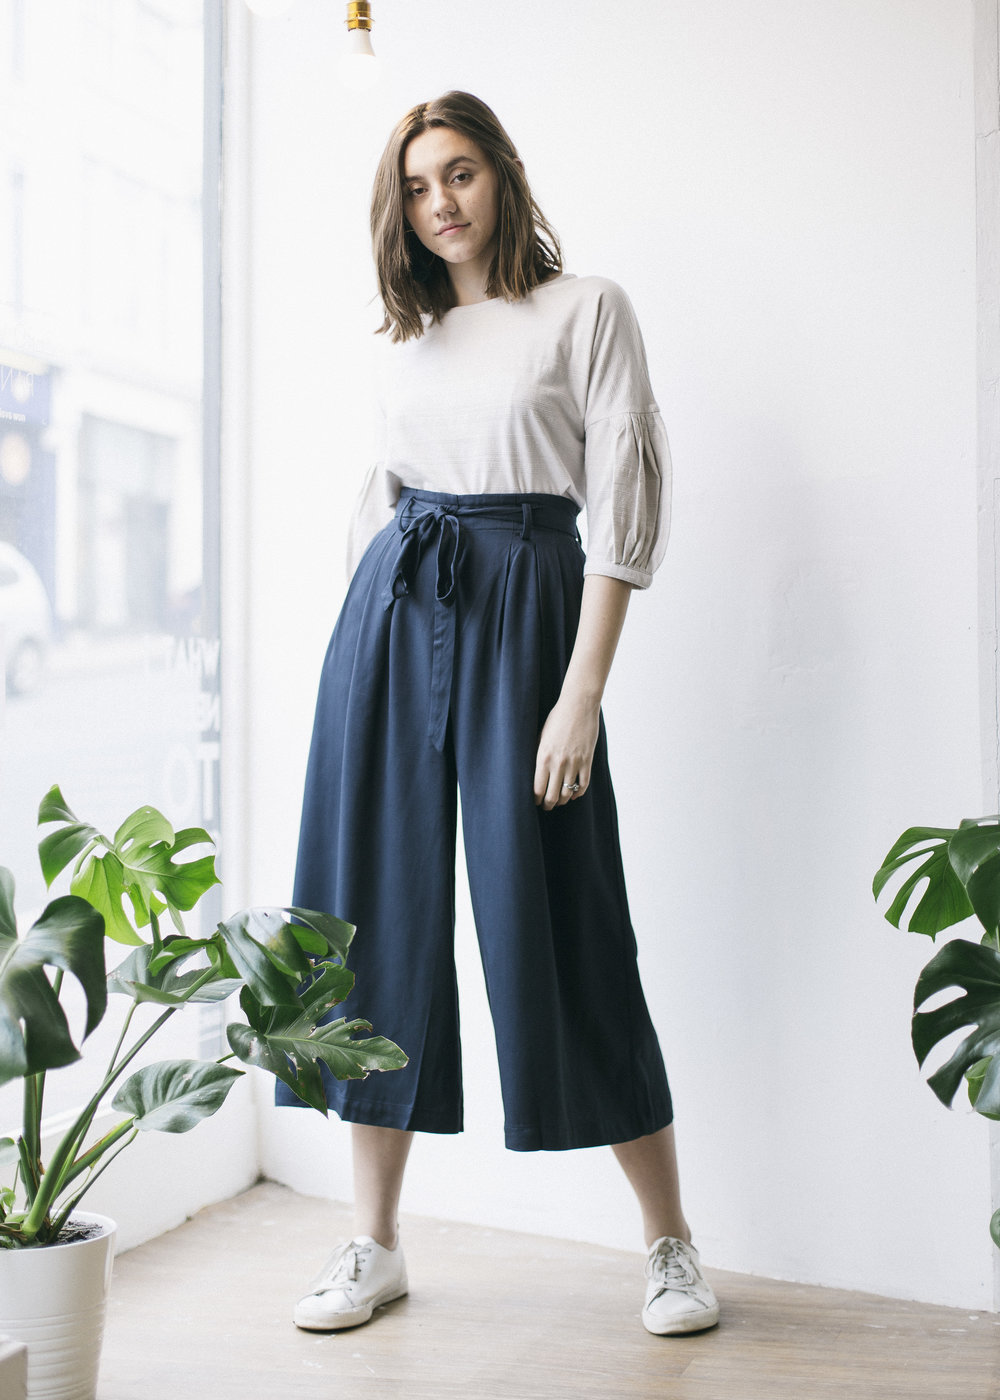 Robyn in Thought Culottes.jpg